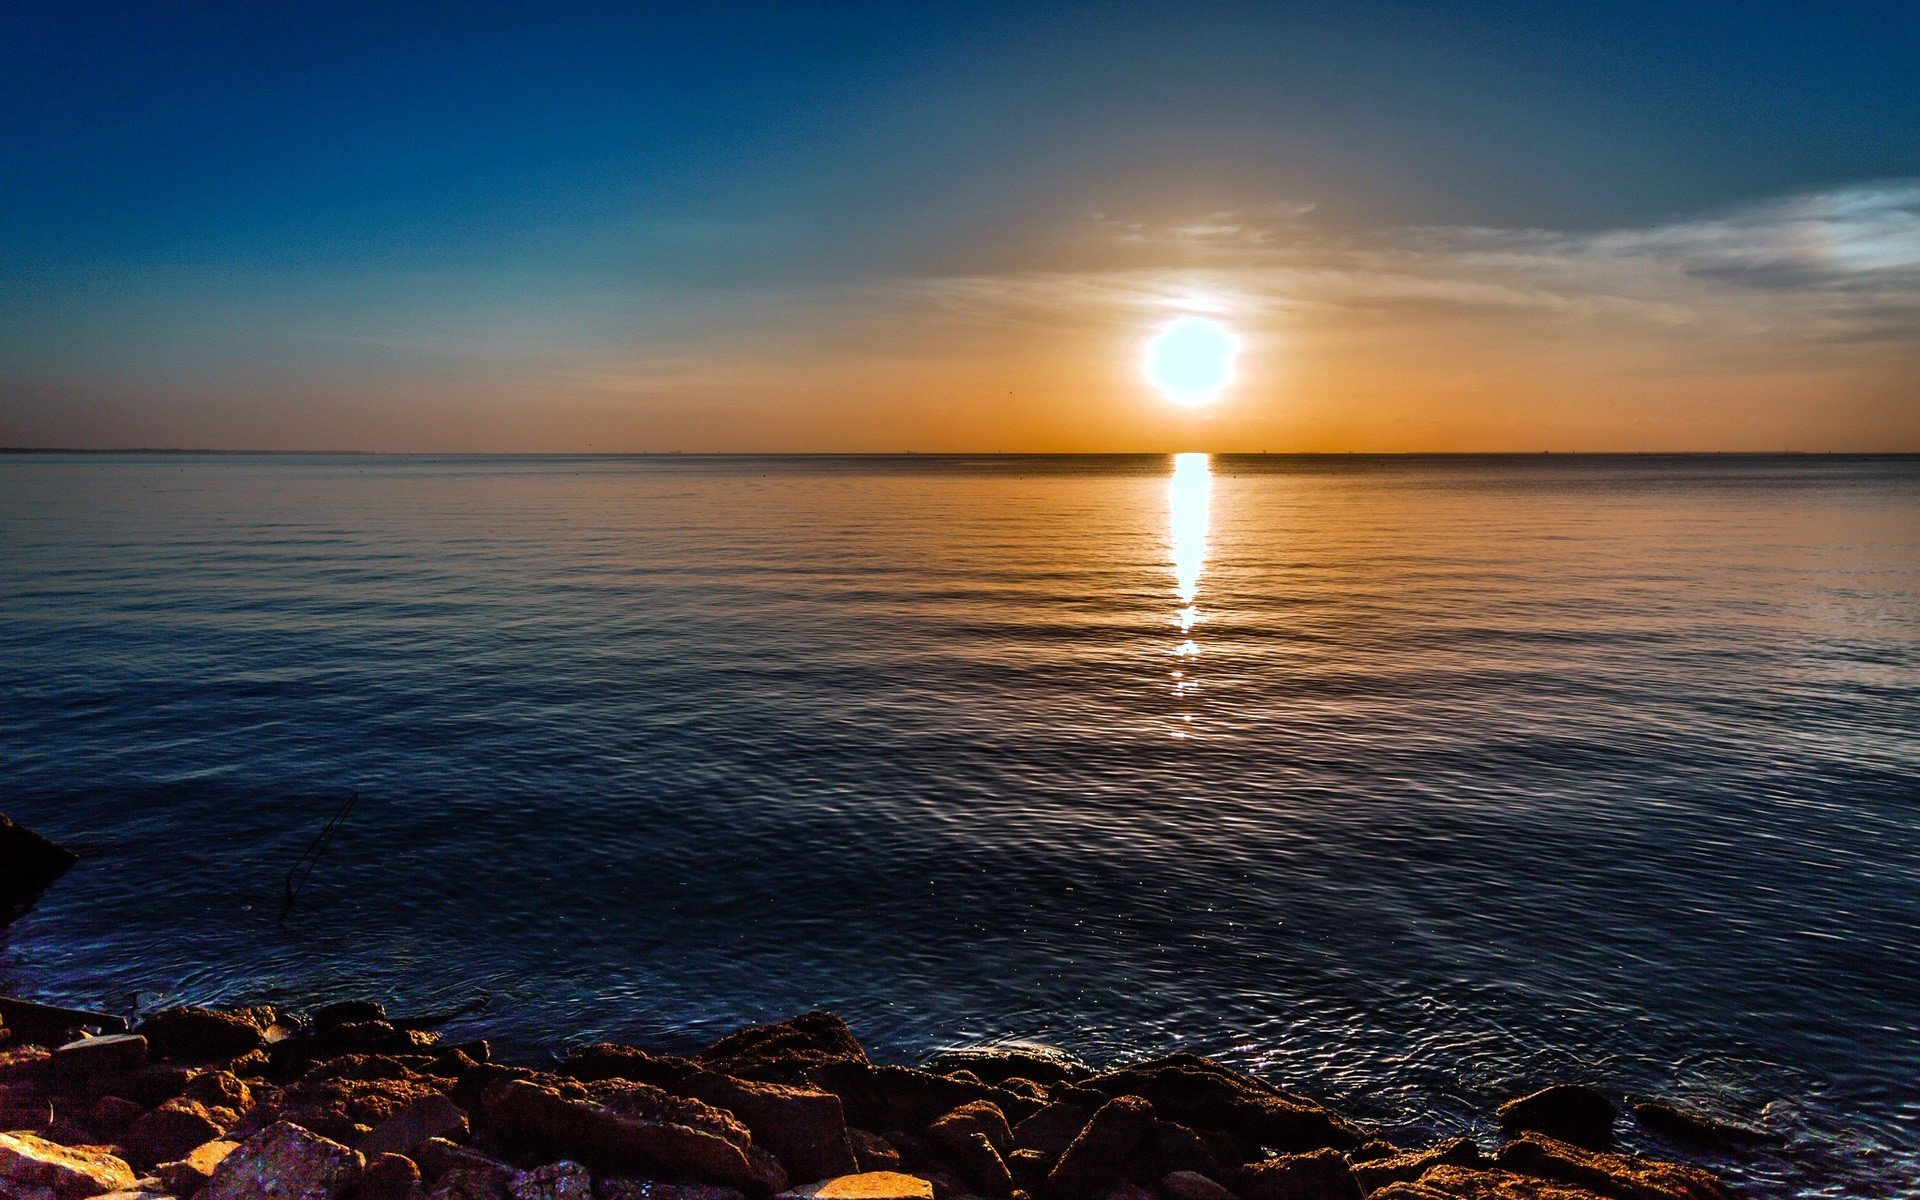 water sunrise ocean nature rocks HDR photography sea clear sky